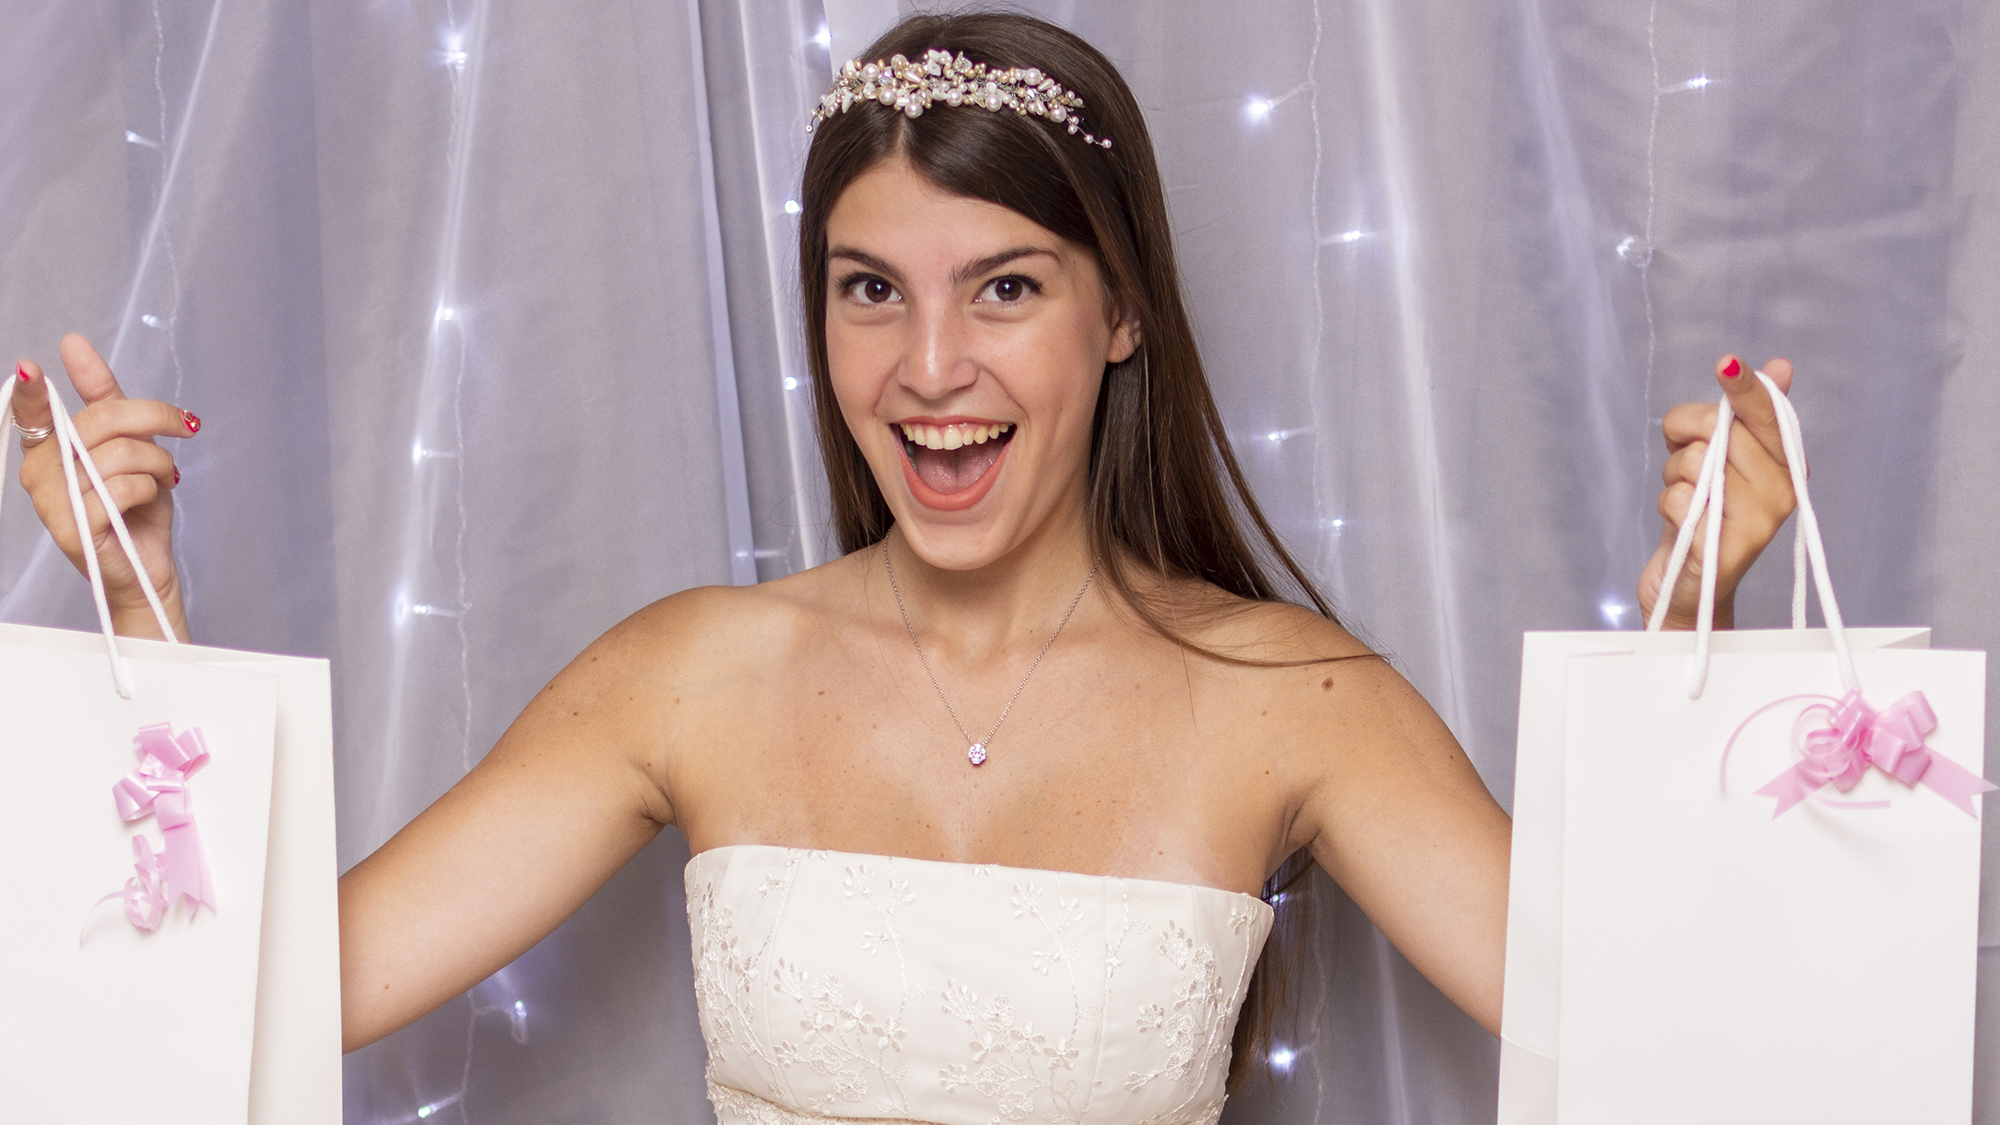 pittsburgh Quinceañera planner pittsburgh sweet 16 party planner